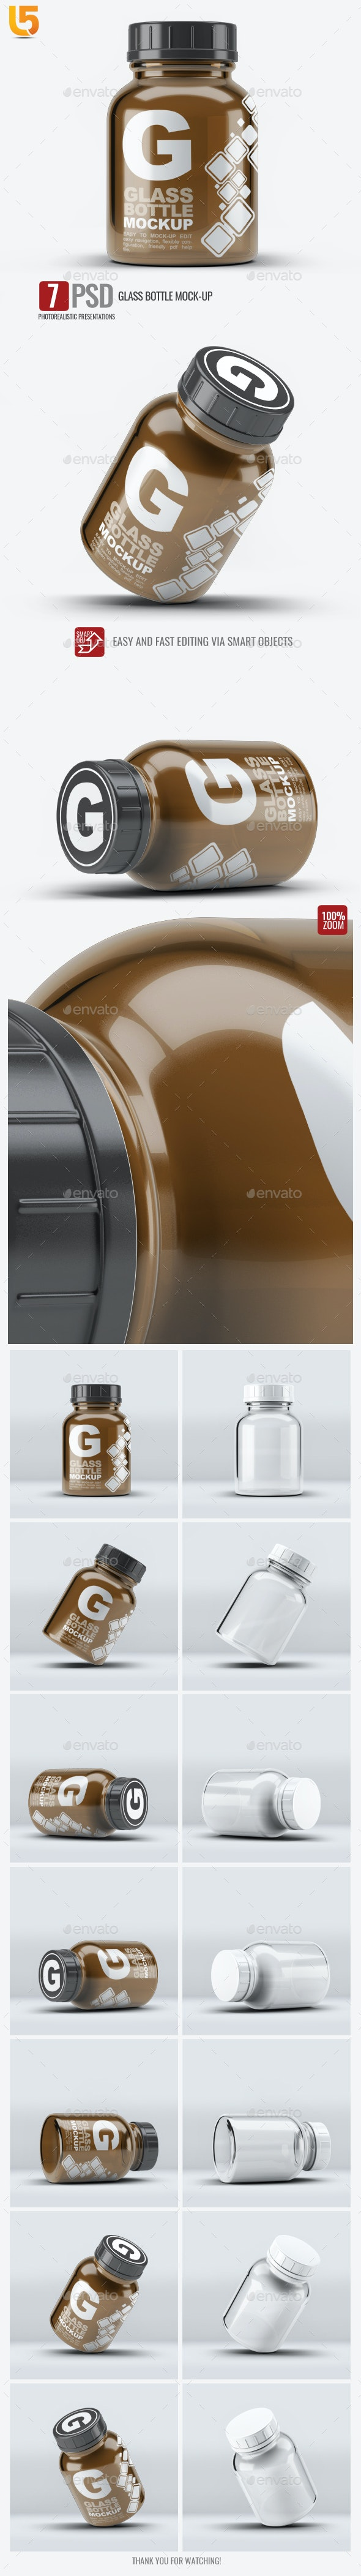 Pill Cosmetics Glass Bottle Mock-Up - Miscellaneous Packaging